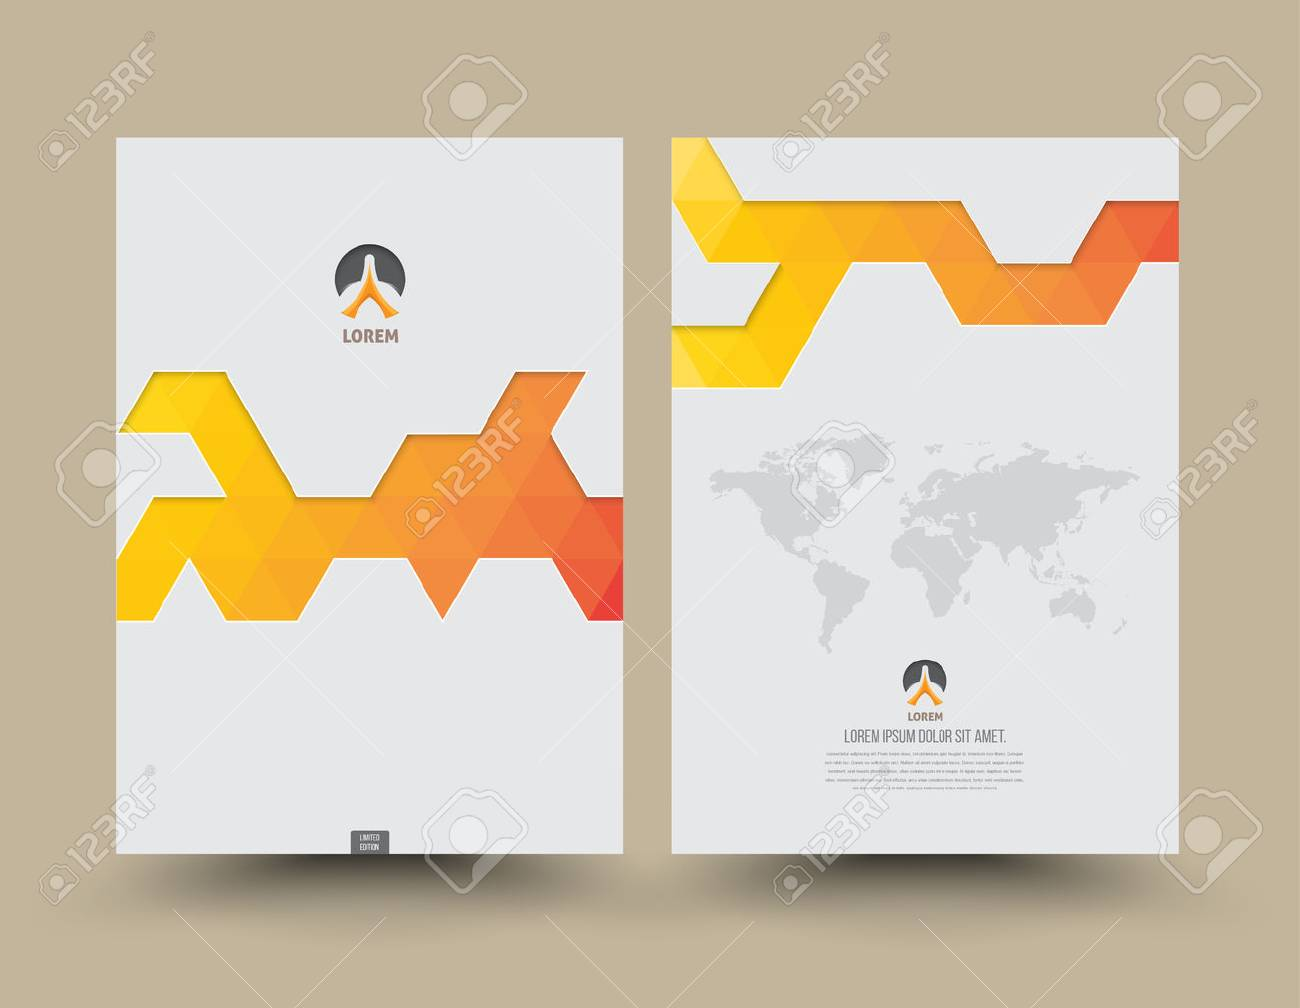 cover page stock photos images royalty cover page images and cover page cover template front and back triangle pattern modern style abstract triangle design